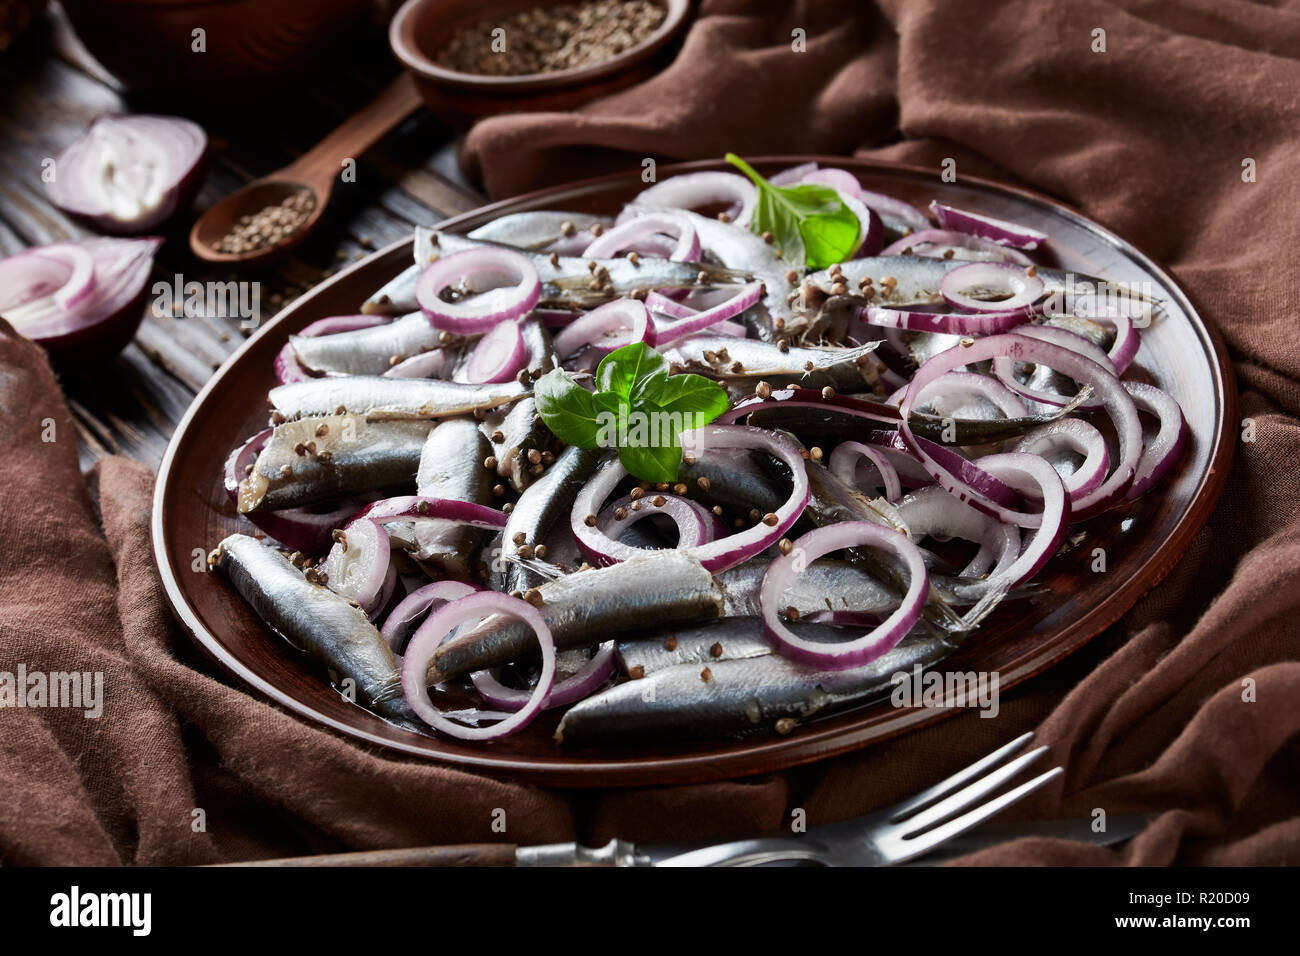 salted sprats marinated with red onion rings on an earthenware plate  coriander seeds, brown cloth, fork and knife on an old rustic wooden table, view - Stock Image